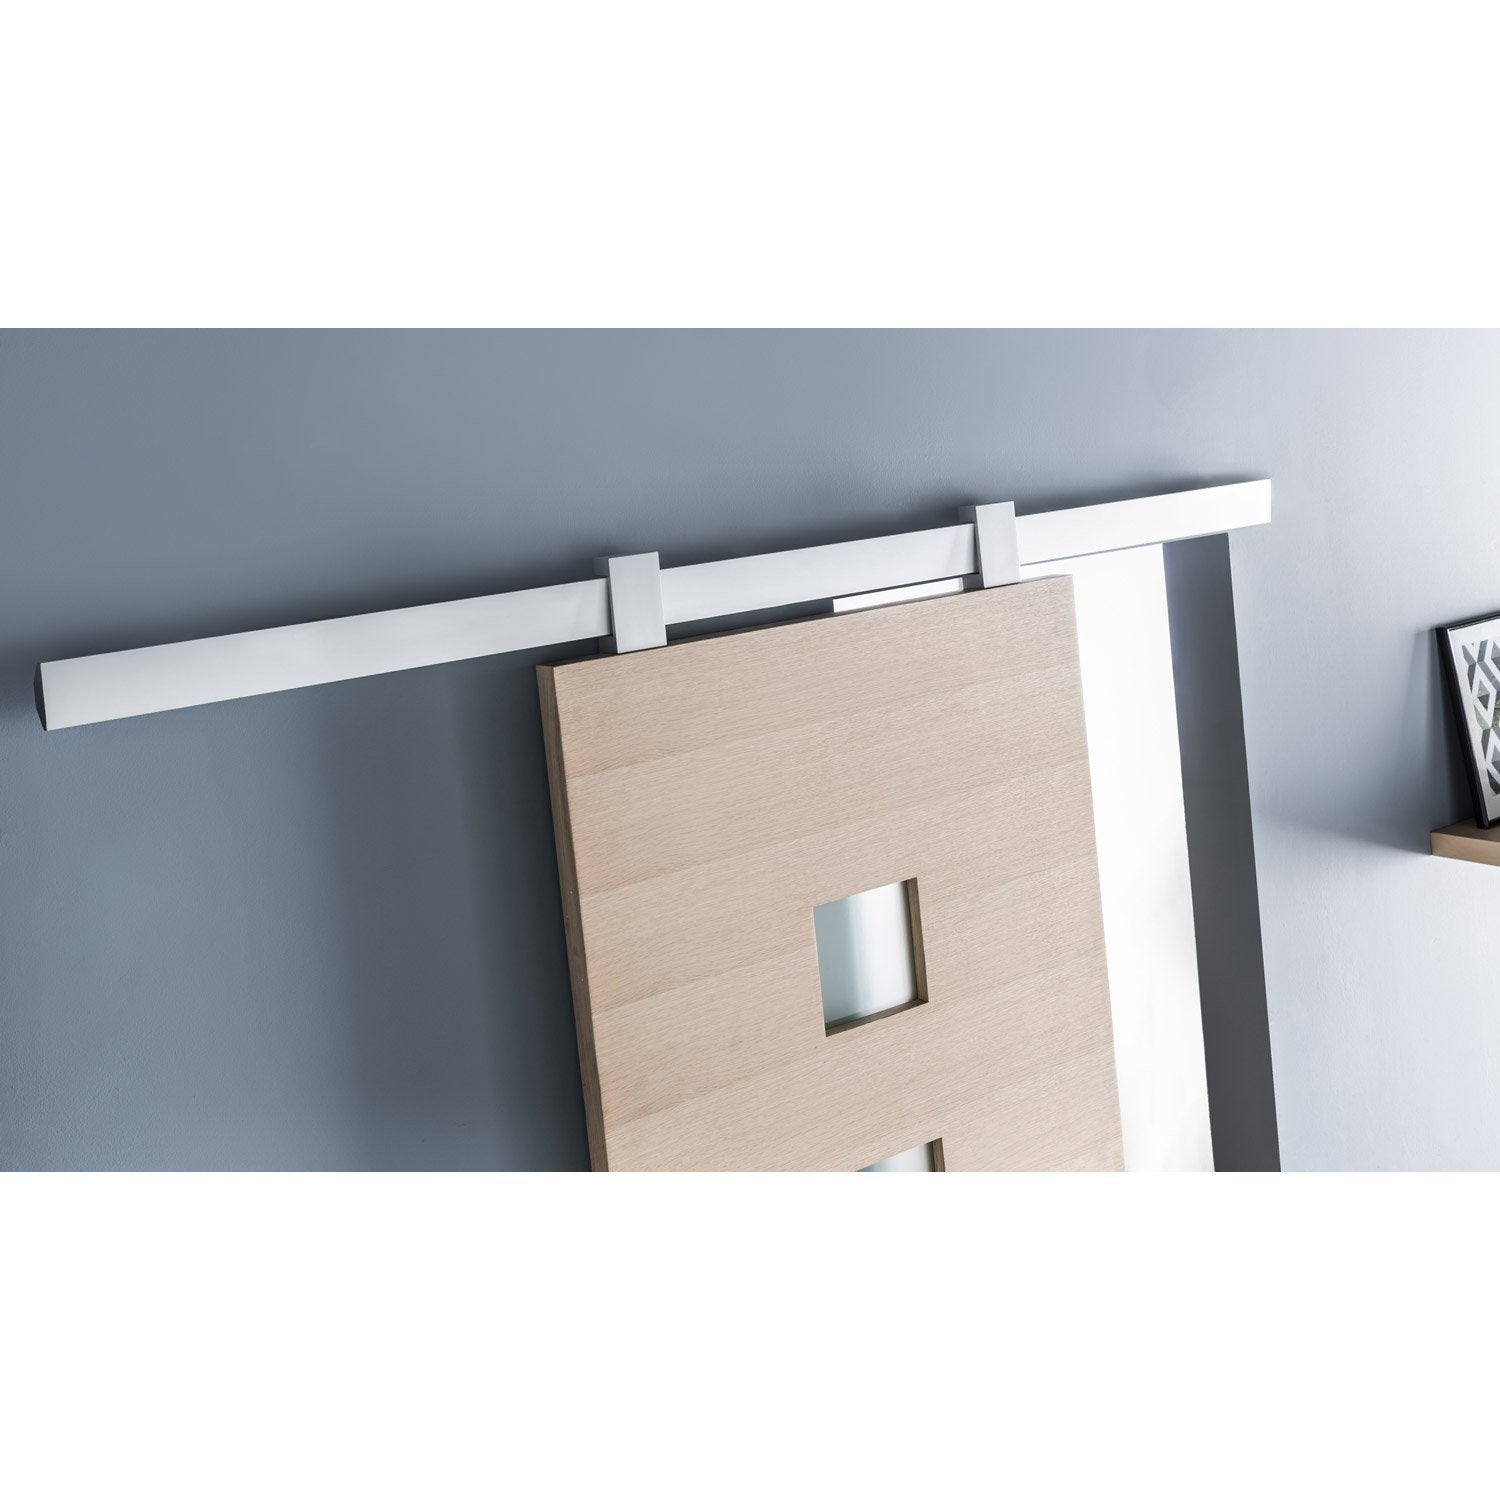 Rail Leroy Merlin Maison Design Apsipcom - Rails portes coulissantes suspendues